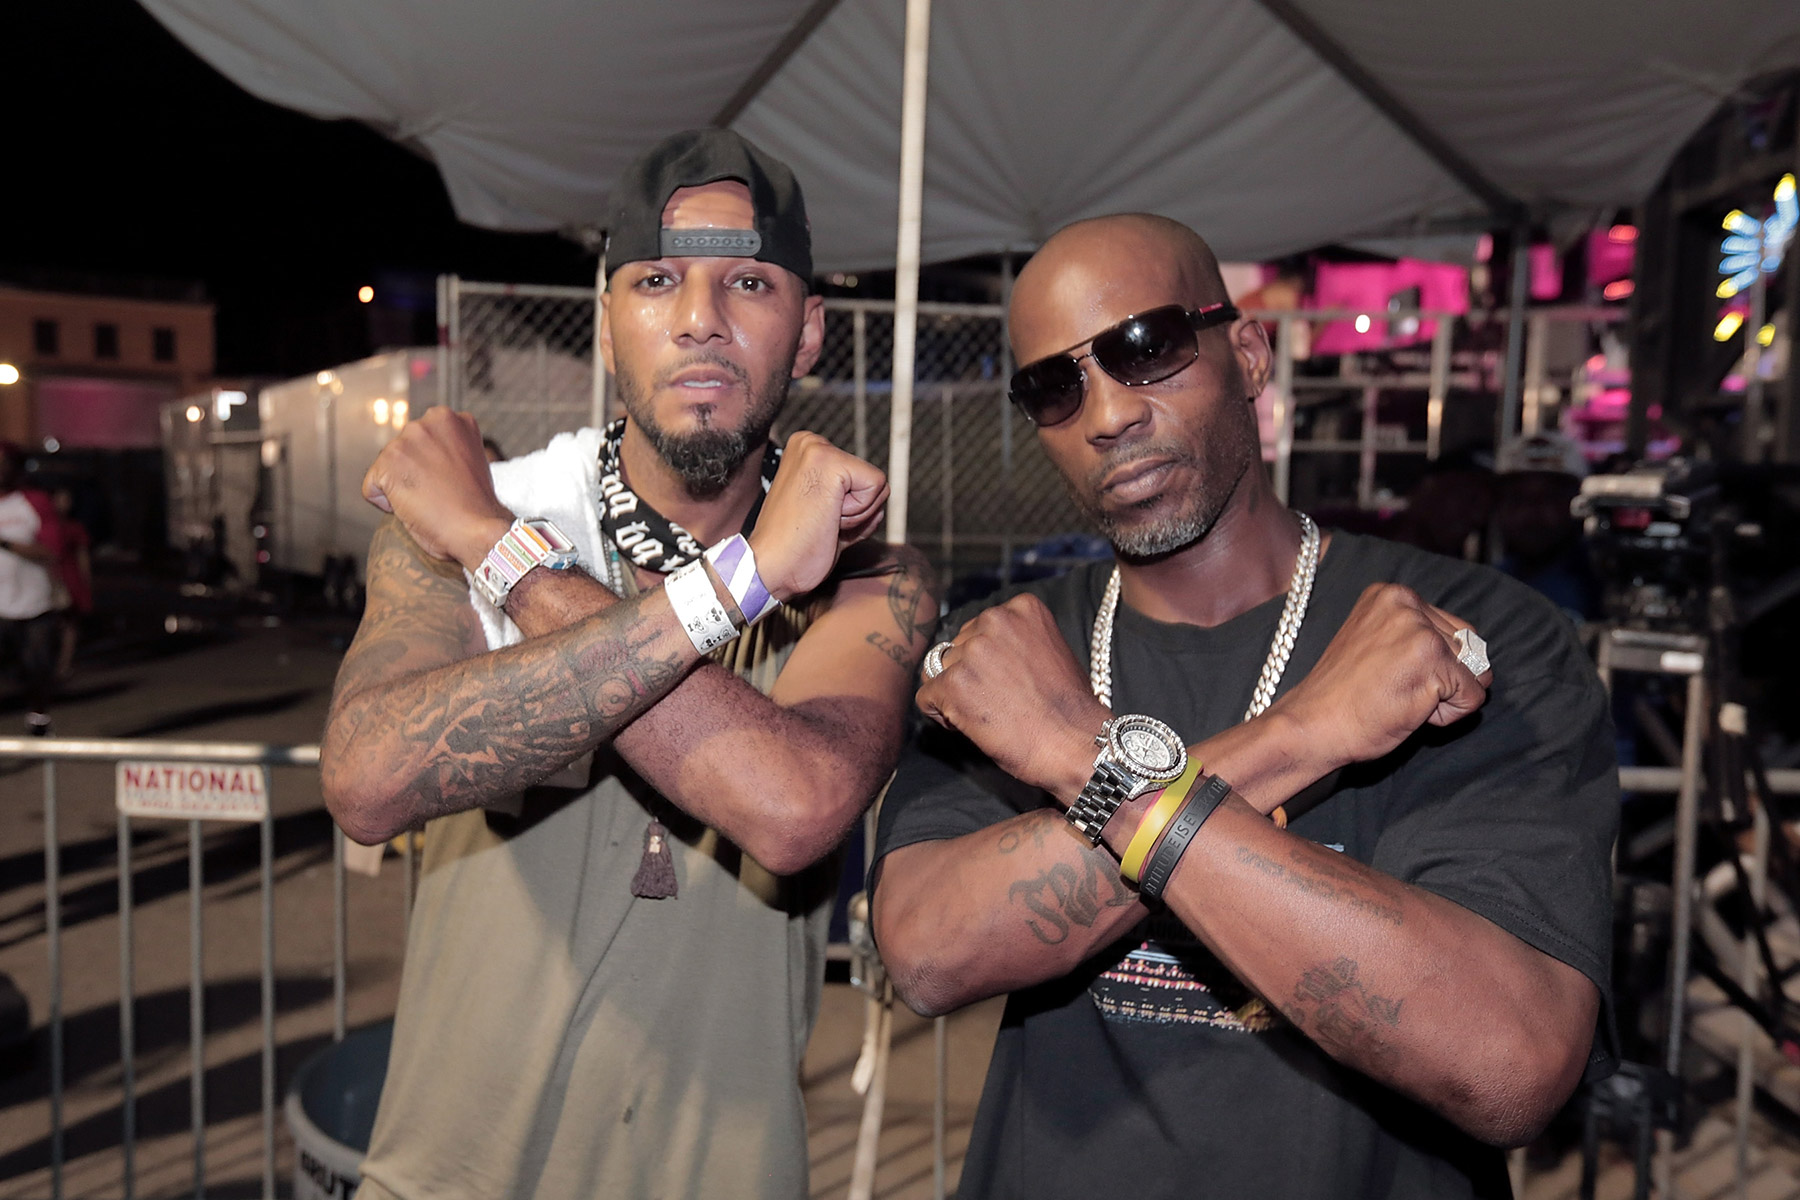 NEW YORK, NY - AUGUST 12: Swiss Beatz and DMX during Swizz Beatz And Bacardi Present No Commission NY: Art Perform - Day 2 on August 12, 2016 in New York City. (Photo by Johnny Nunez/WireImage)